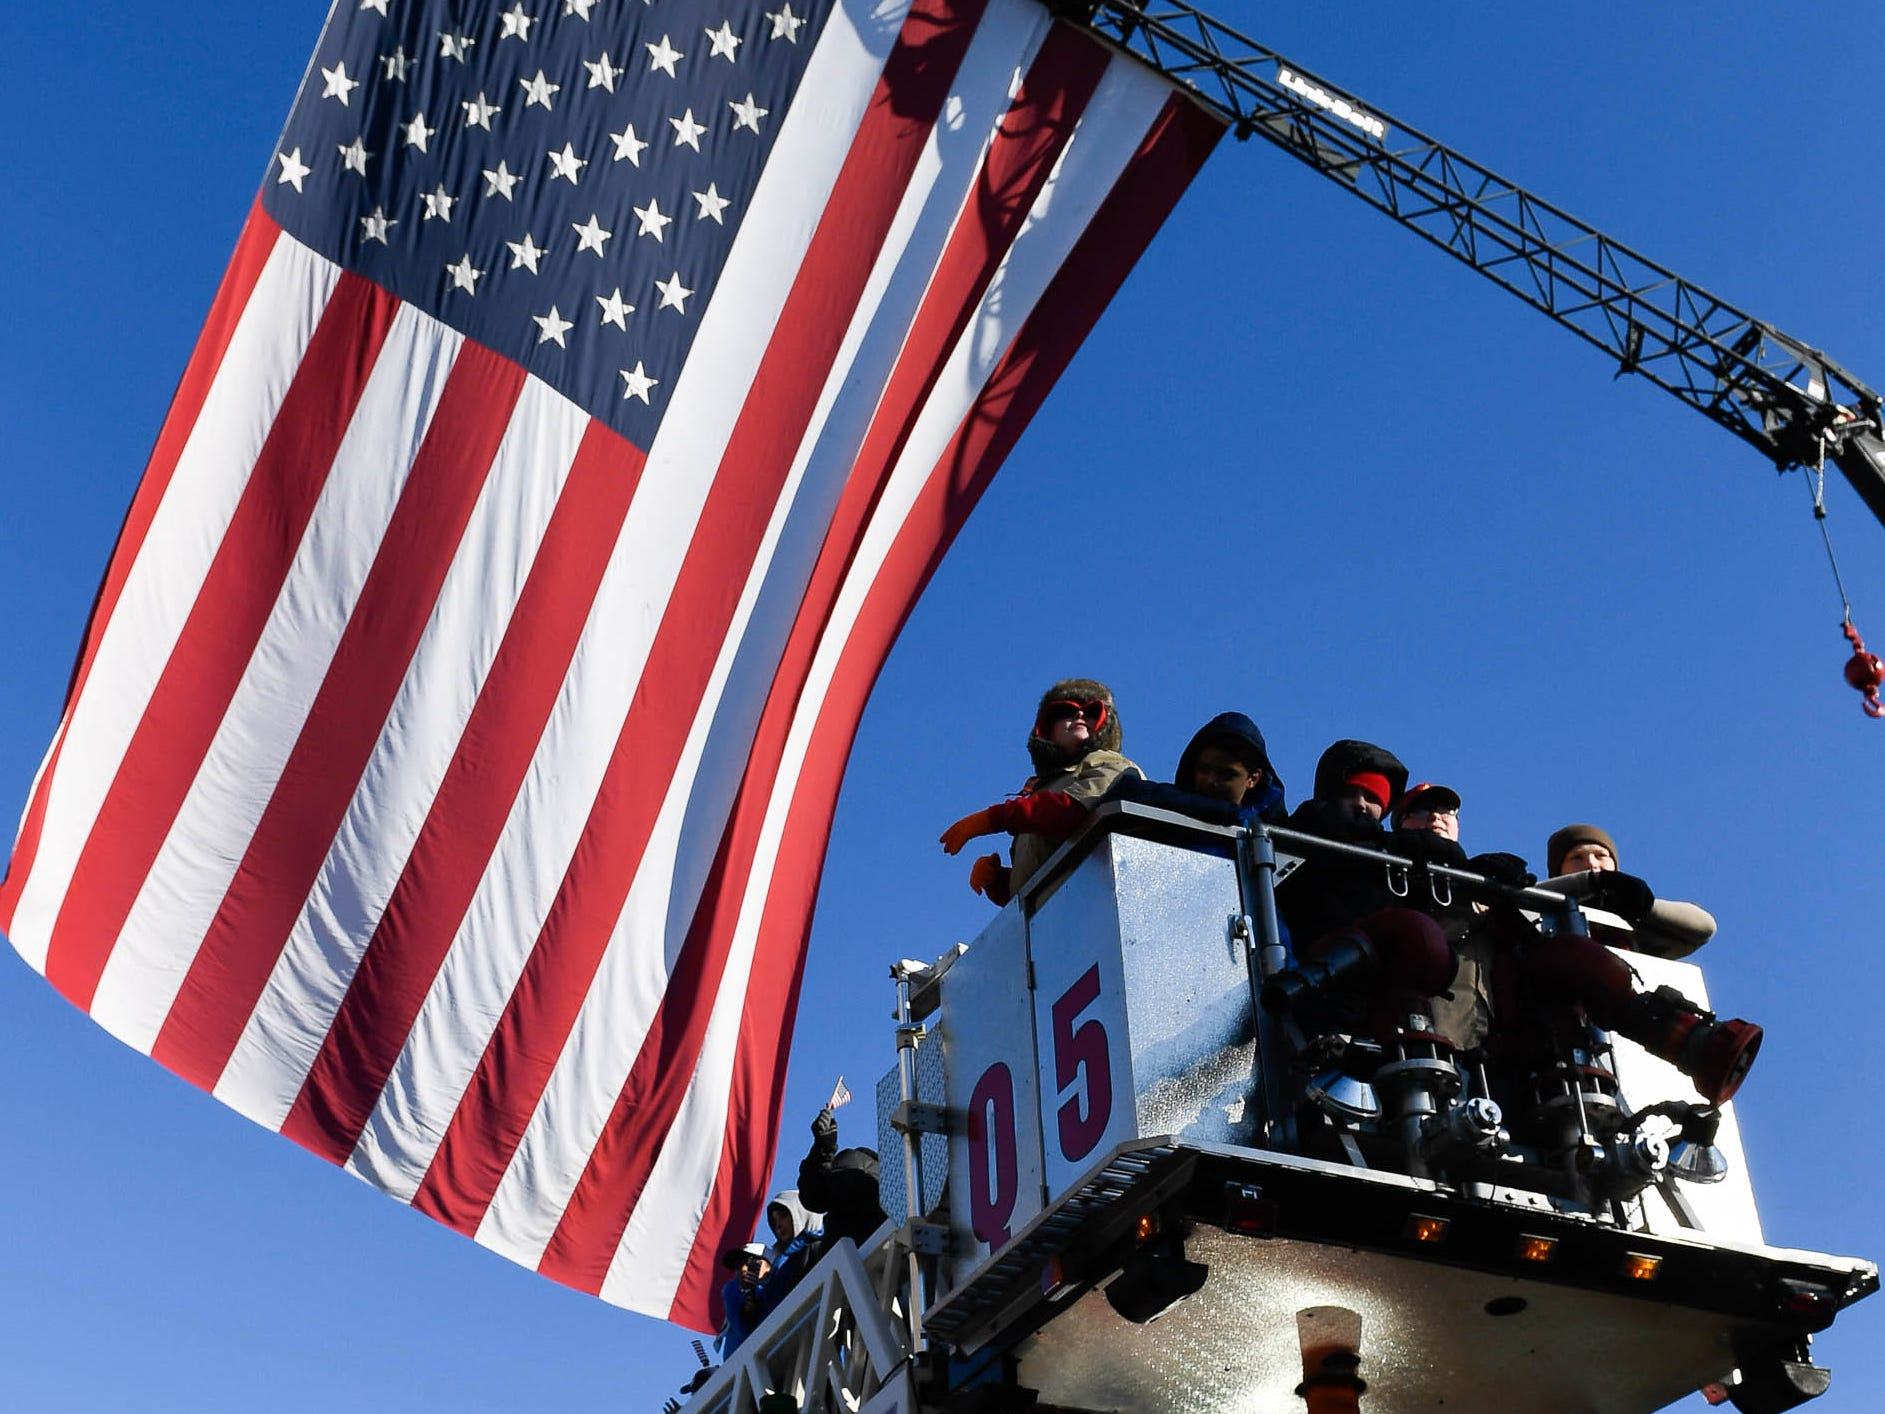 The McCutchanville Fire Department ladder truck at the annual Four Freedoms Veterans Parade on Evansville's West Franklin Street Saturday, November 10, 2018.